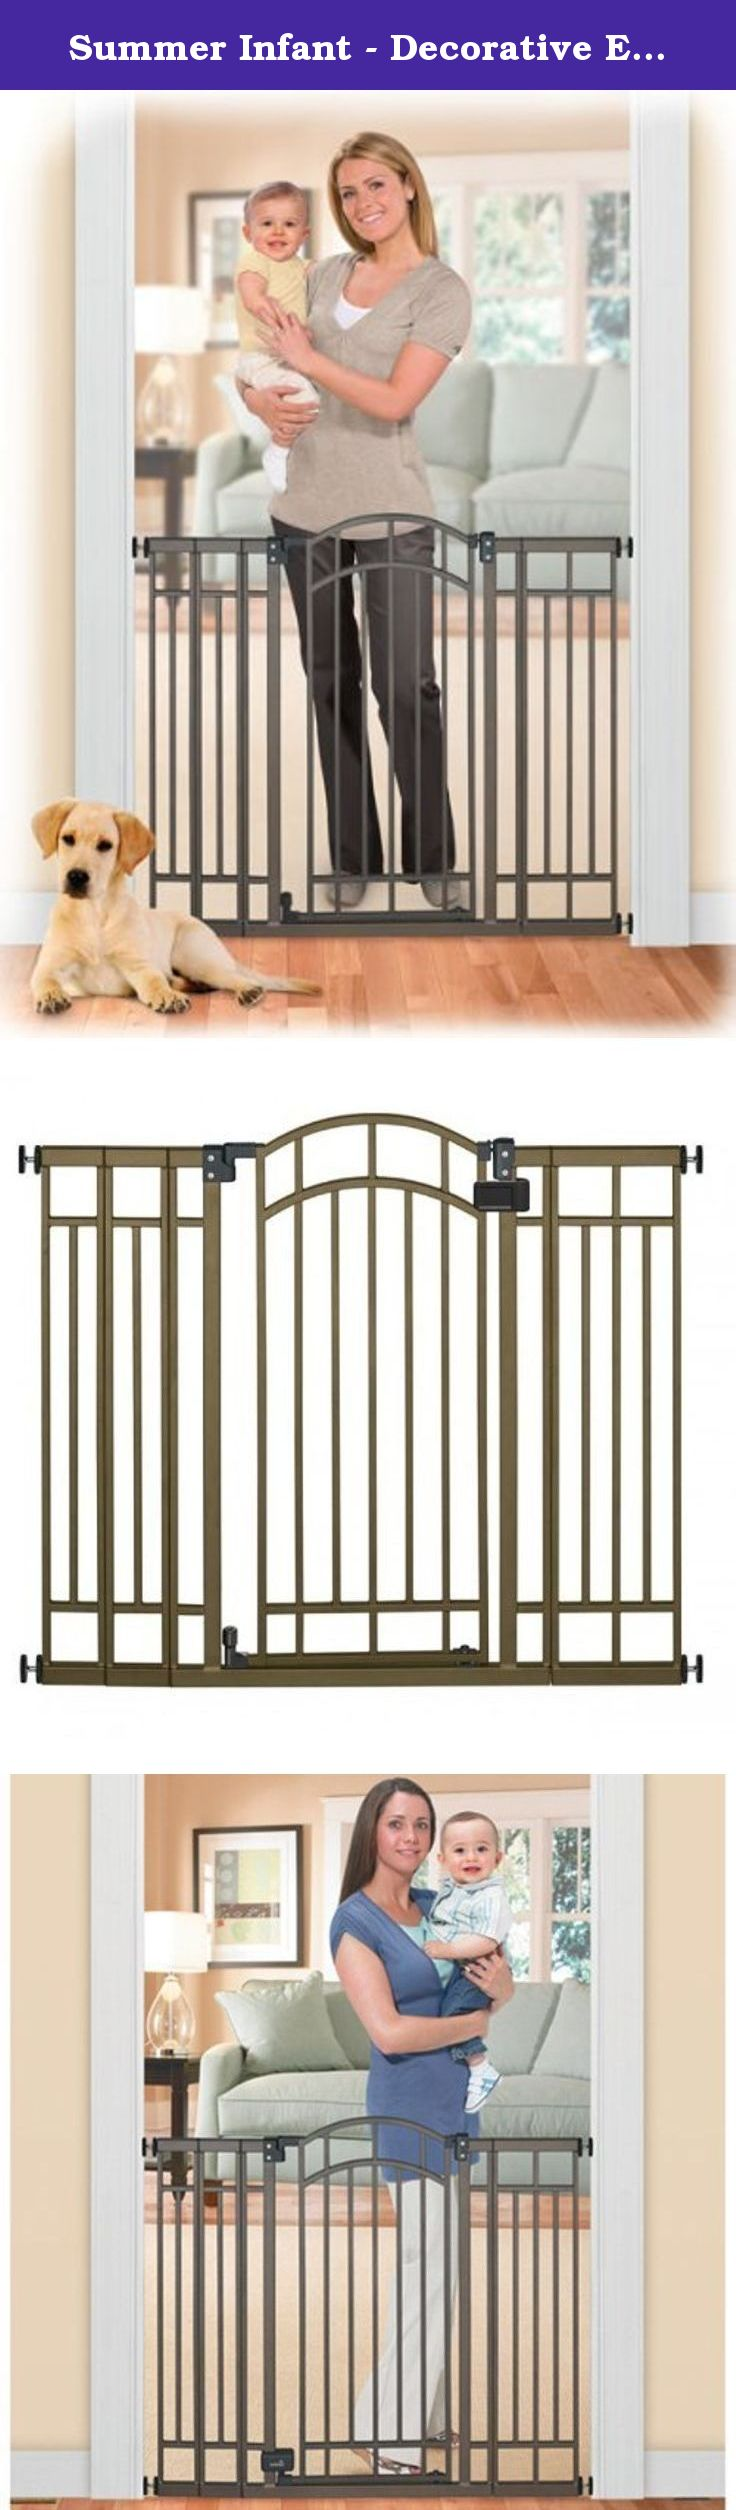 Summer Infant Decorative Extra Tall Gate Hardware Mounted Option